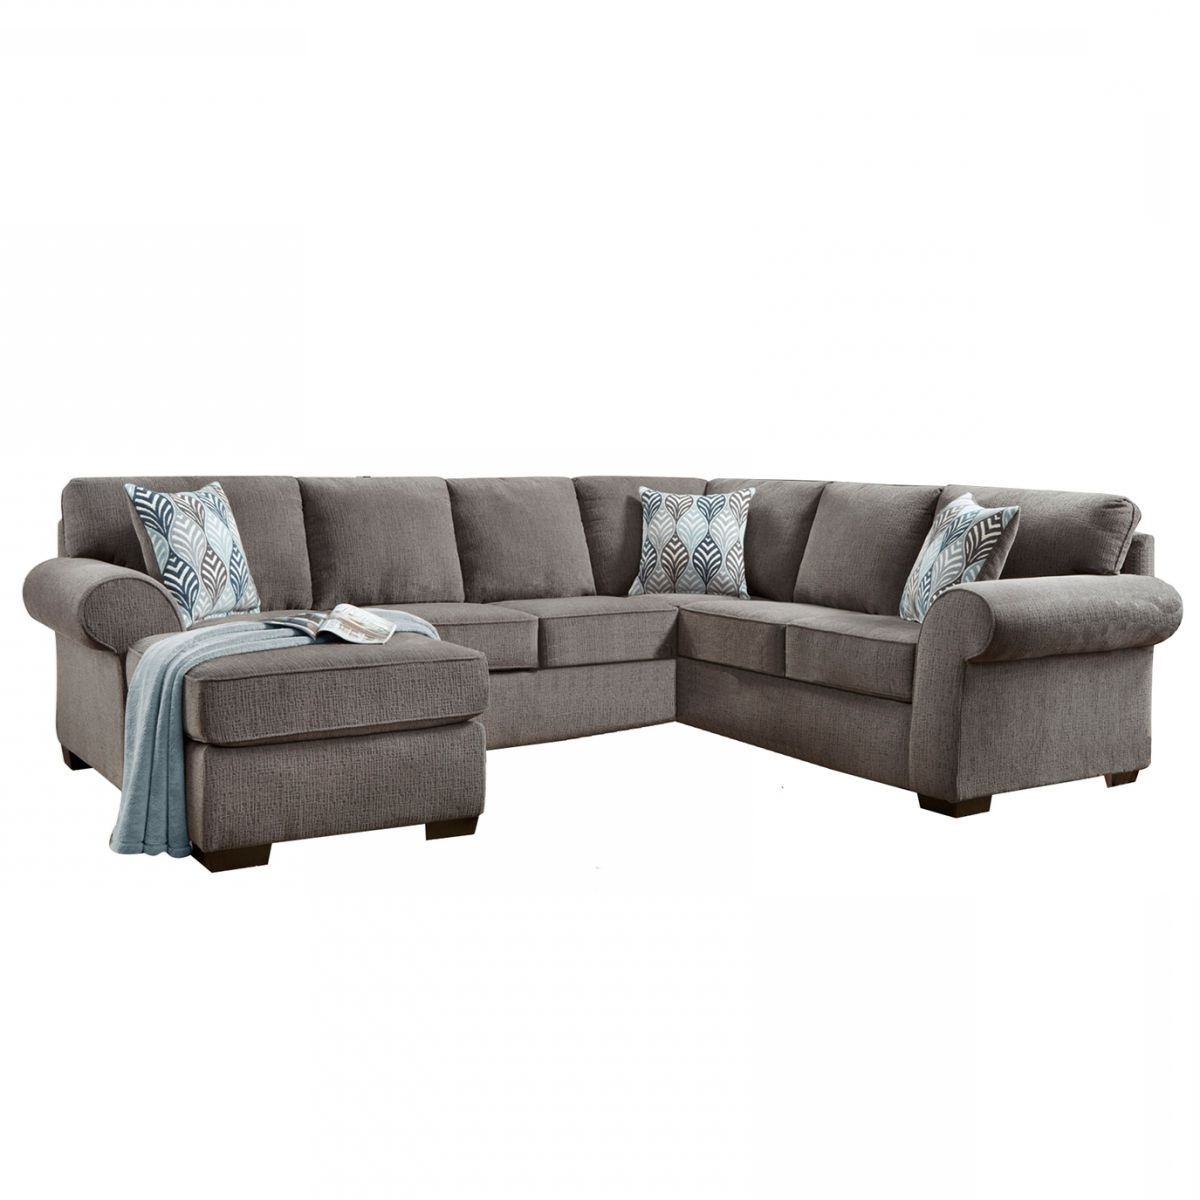 Sectional Sofa Sets Large Small Couches Grey – Locsbyhelenelorasa In Favorite Mcdade Graphite 2 Piece Sectionals With Laf Chaise (View 5 of 20)